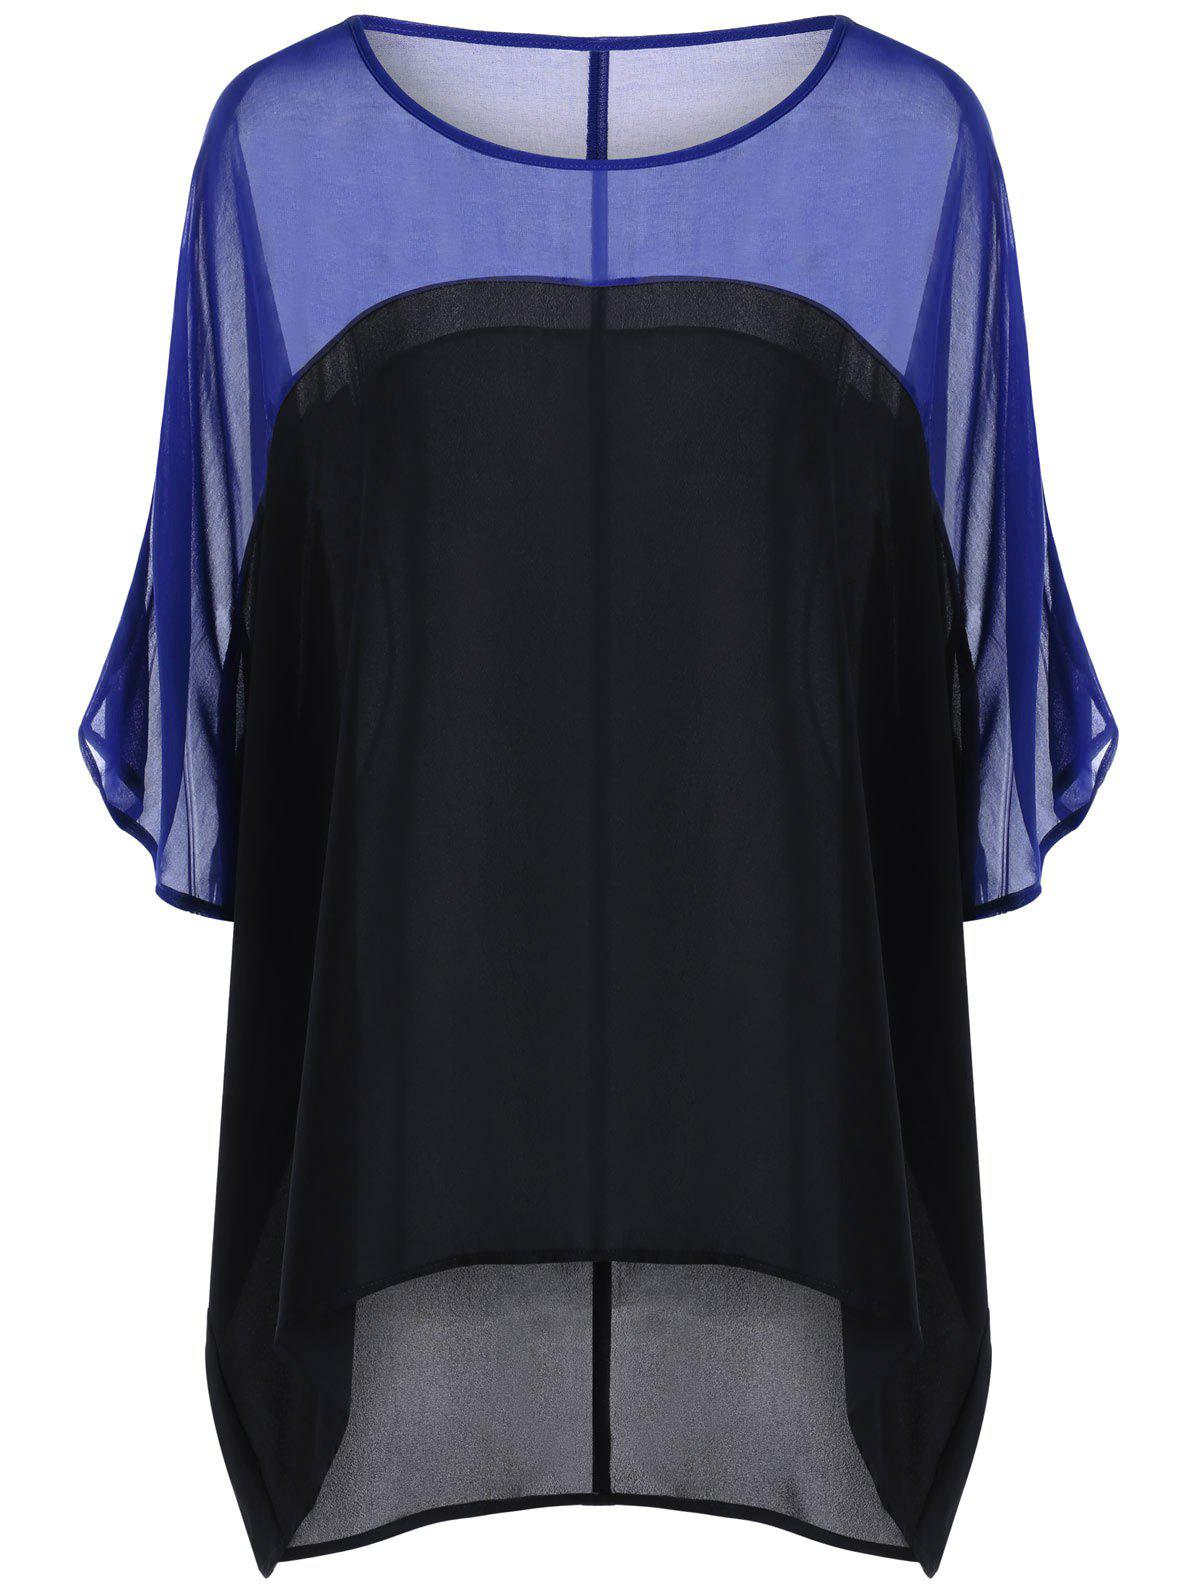 Color Block Sheer Plus Size BlouseWOMEN<br><br>Size: 2XL; Color: BLUE; Material: Polyester; Shirt Length: Long; Sleeve Length: Half; Collar: Scoop Neck; Style: Casual; Season: Summer; Pattern Type: Solid; Weight: 0.2000kg; Package Contents: 1 x Blouse;